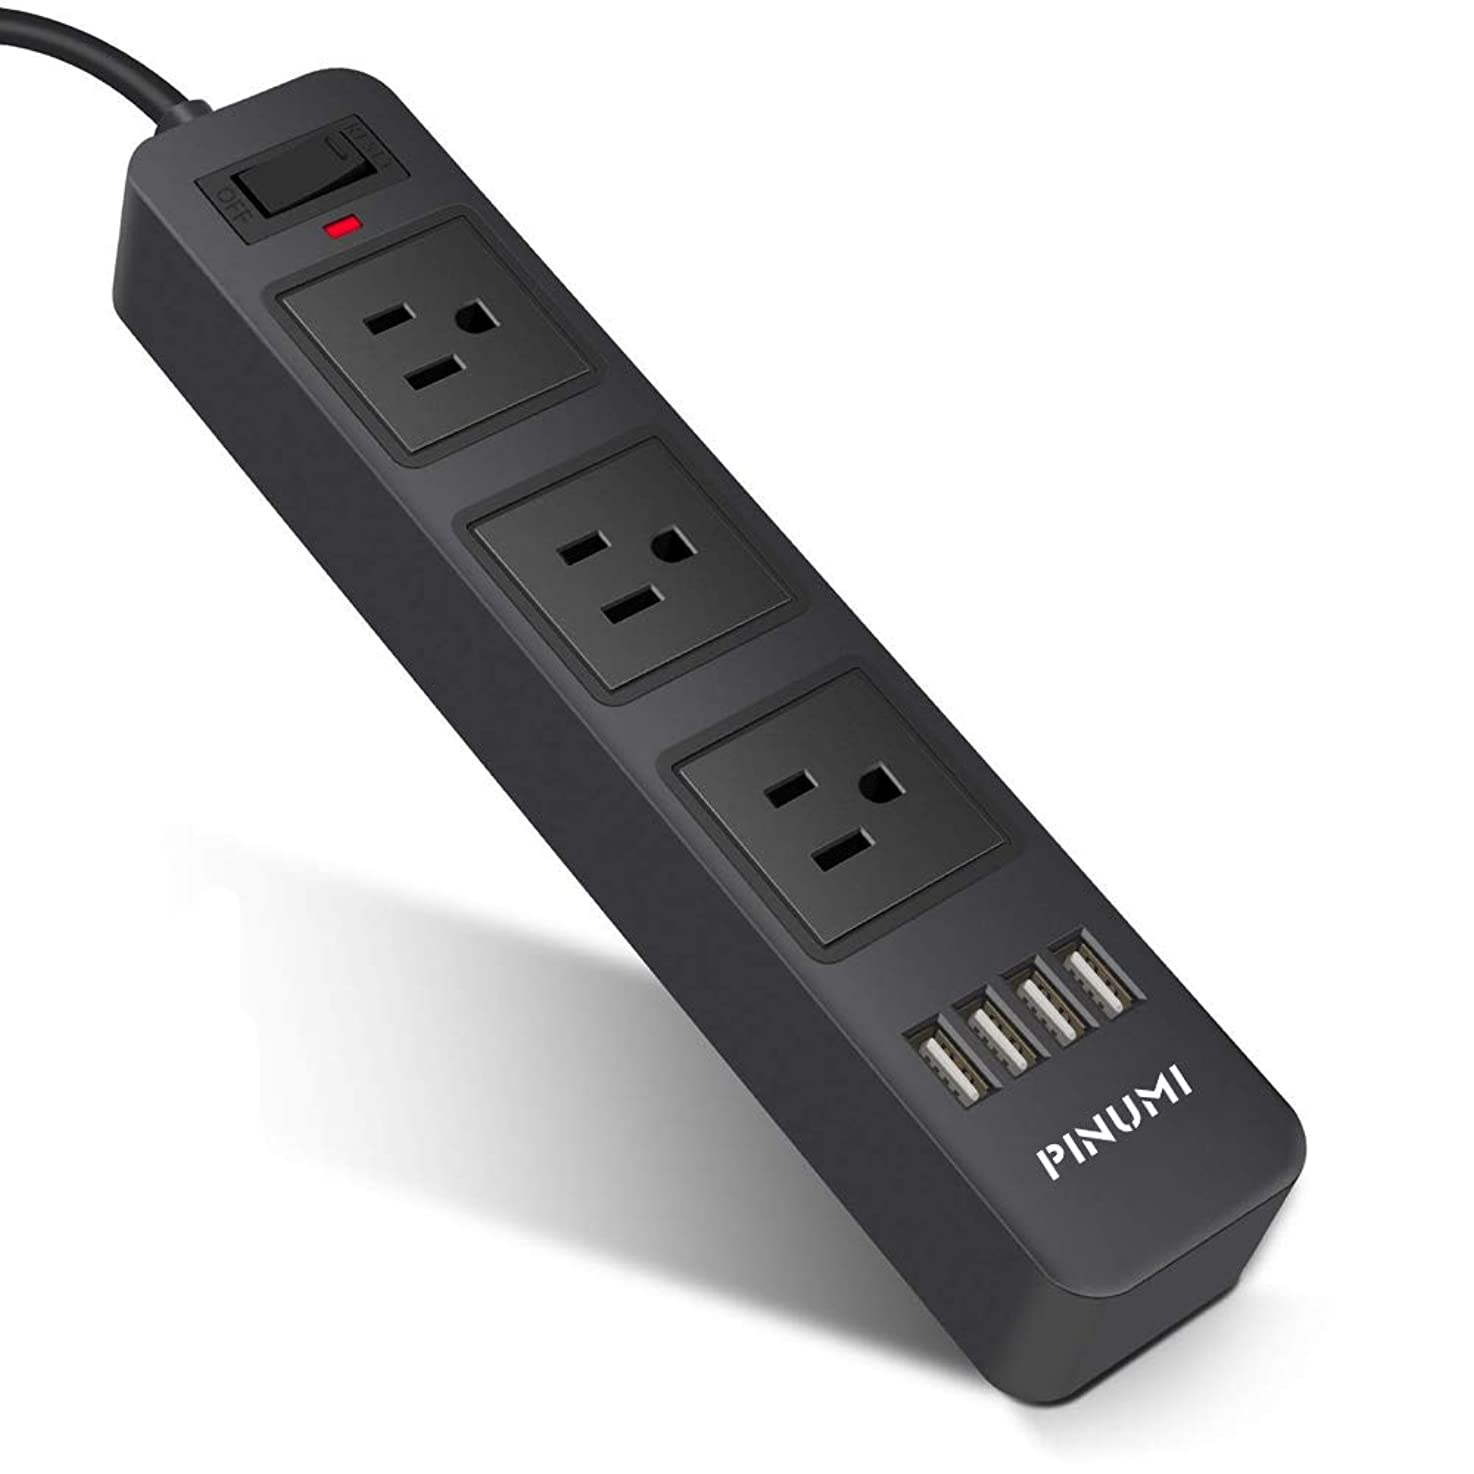 Power Strip with 3 -Outlet and 4USB Charing Ports .Home/Office Surge Protector with 6.6ft Extension Cord for Smartphone and Tablets